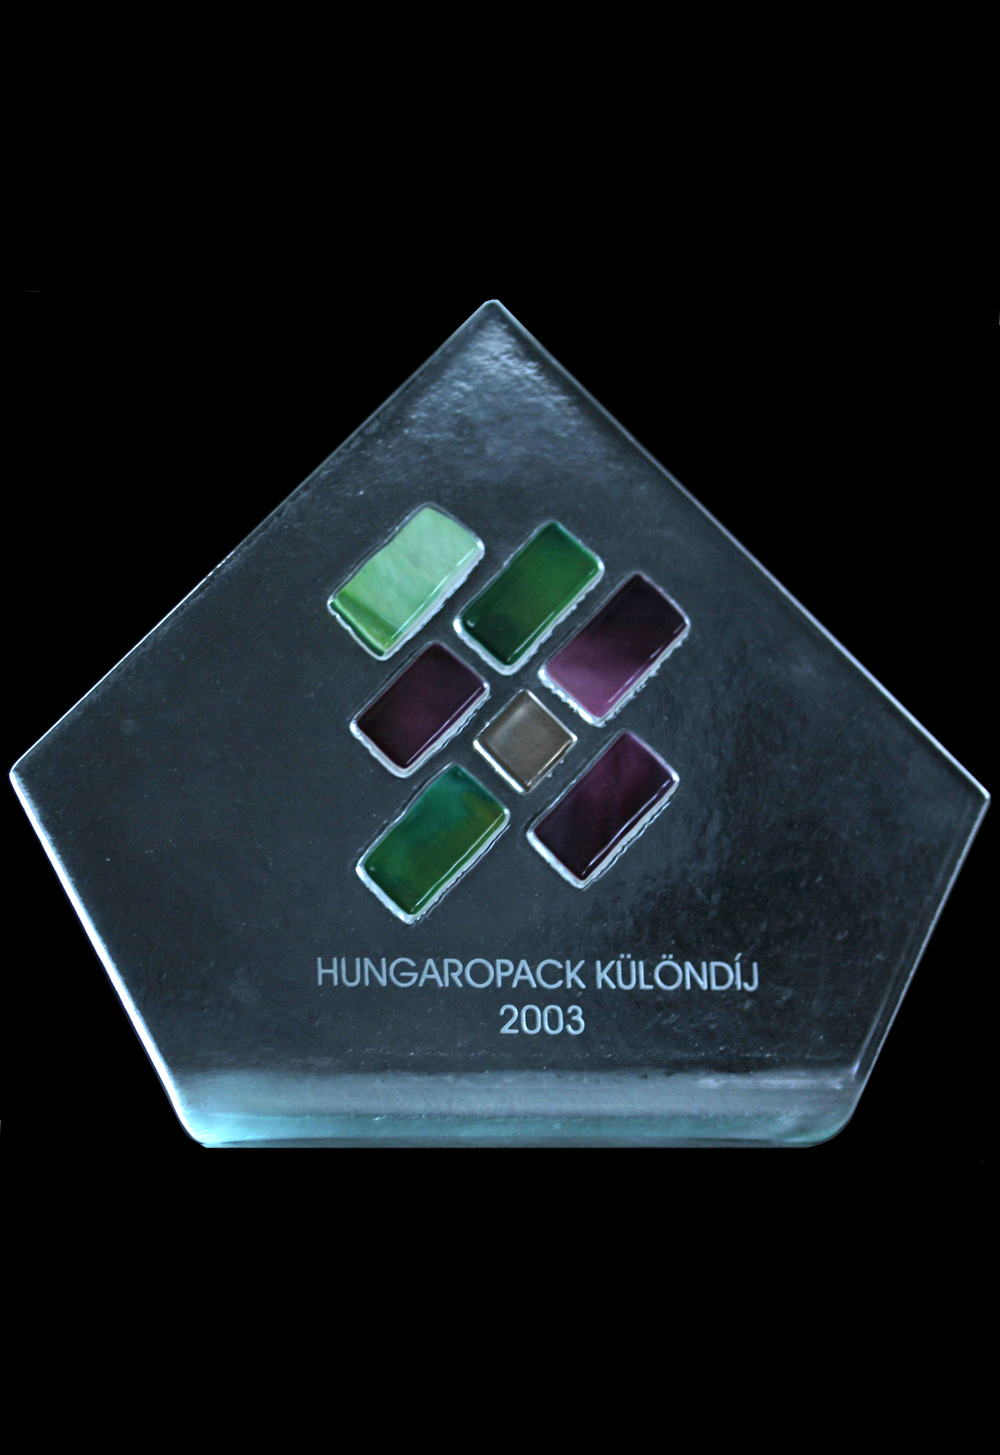 Chemi-Pack LLC received the special